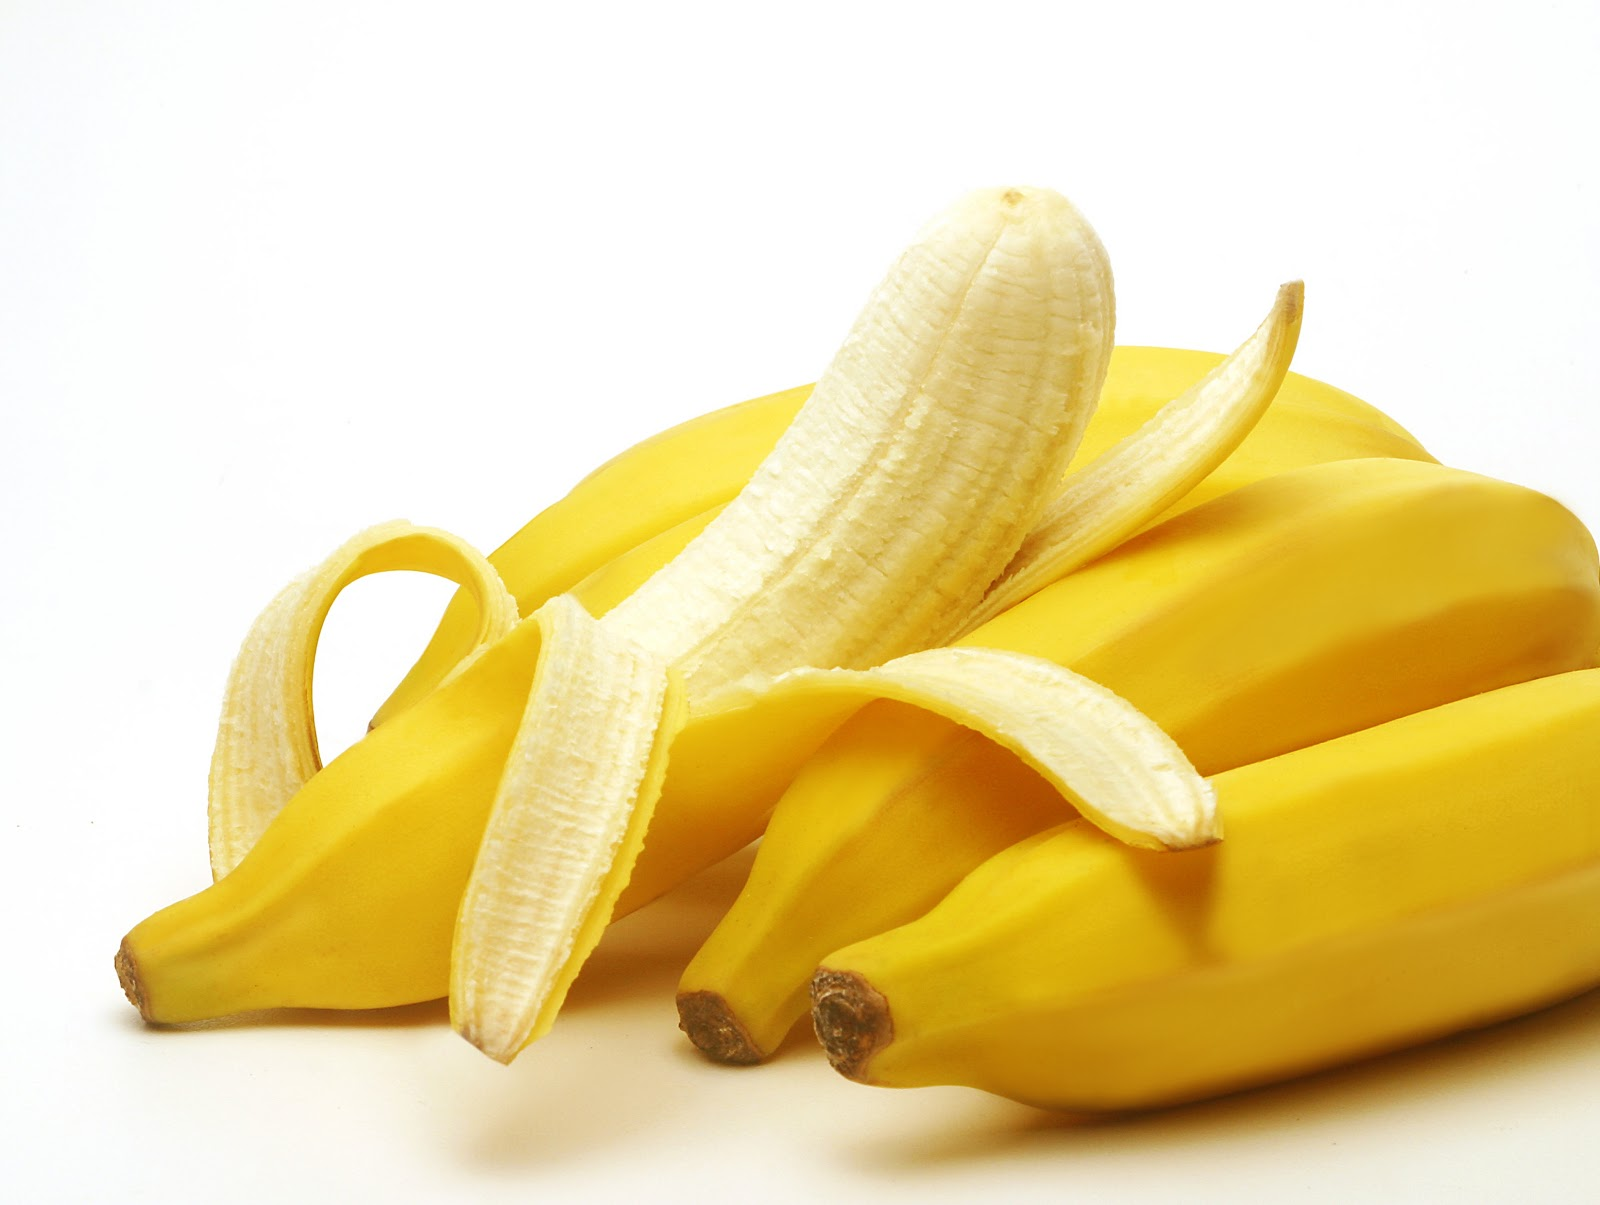 Going Bananas: 5 Healthy Uses Of Overripe Bananas (RECIPES) - The Trent